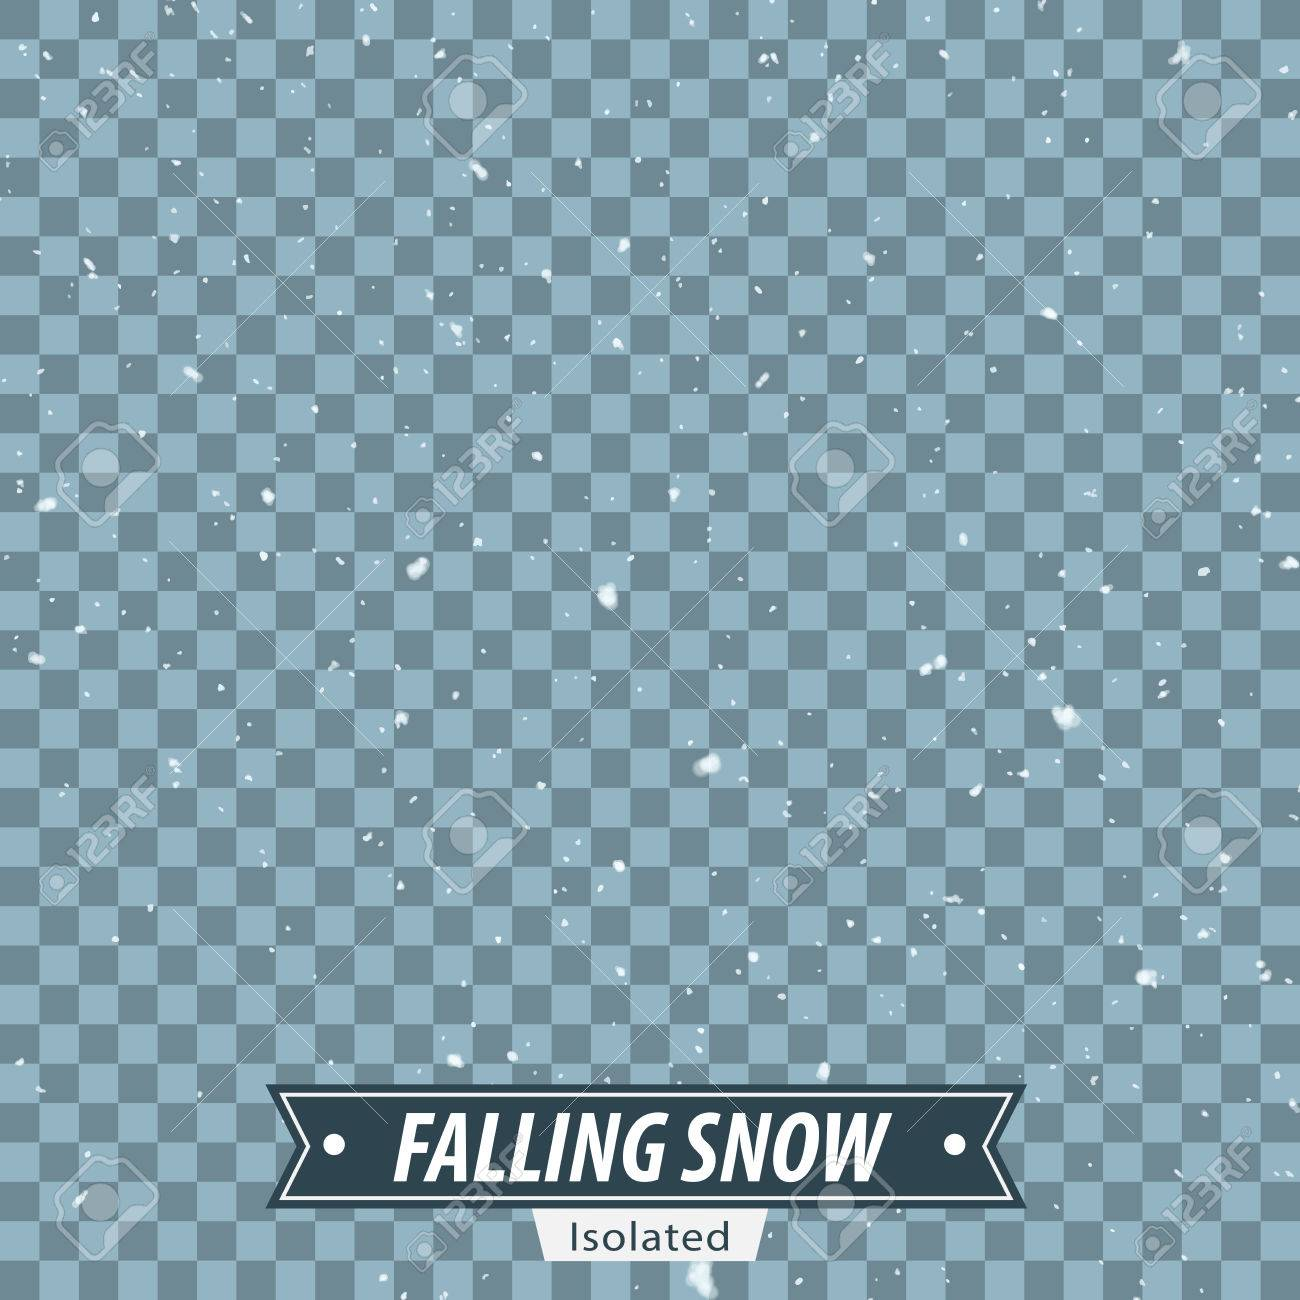 Isolated Falling Snow EPS10 Vector - 51749645